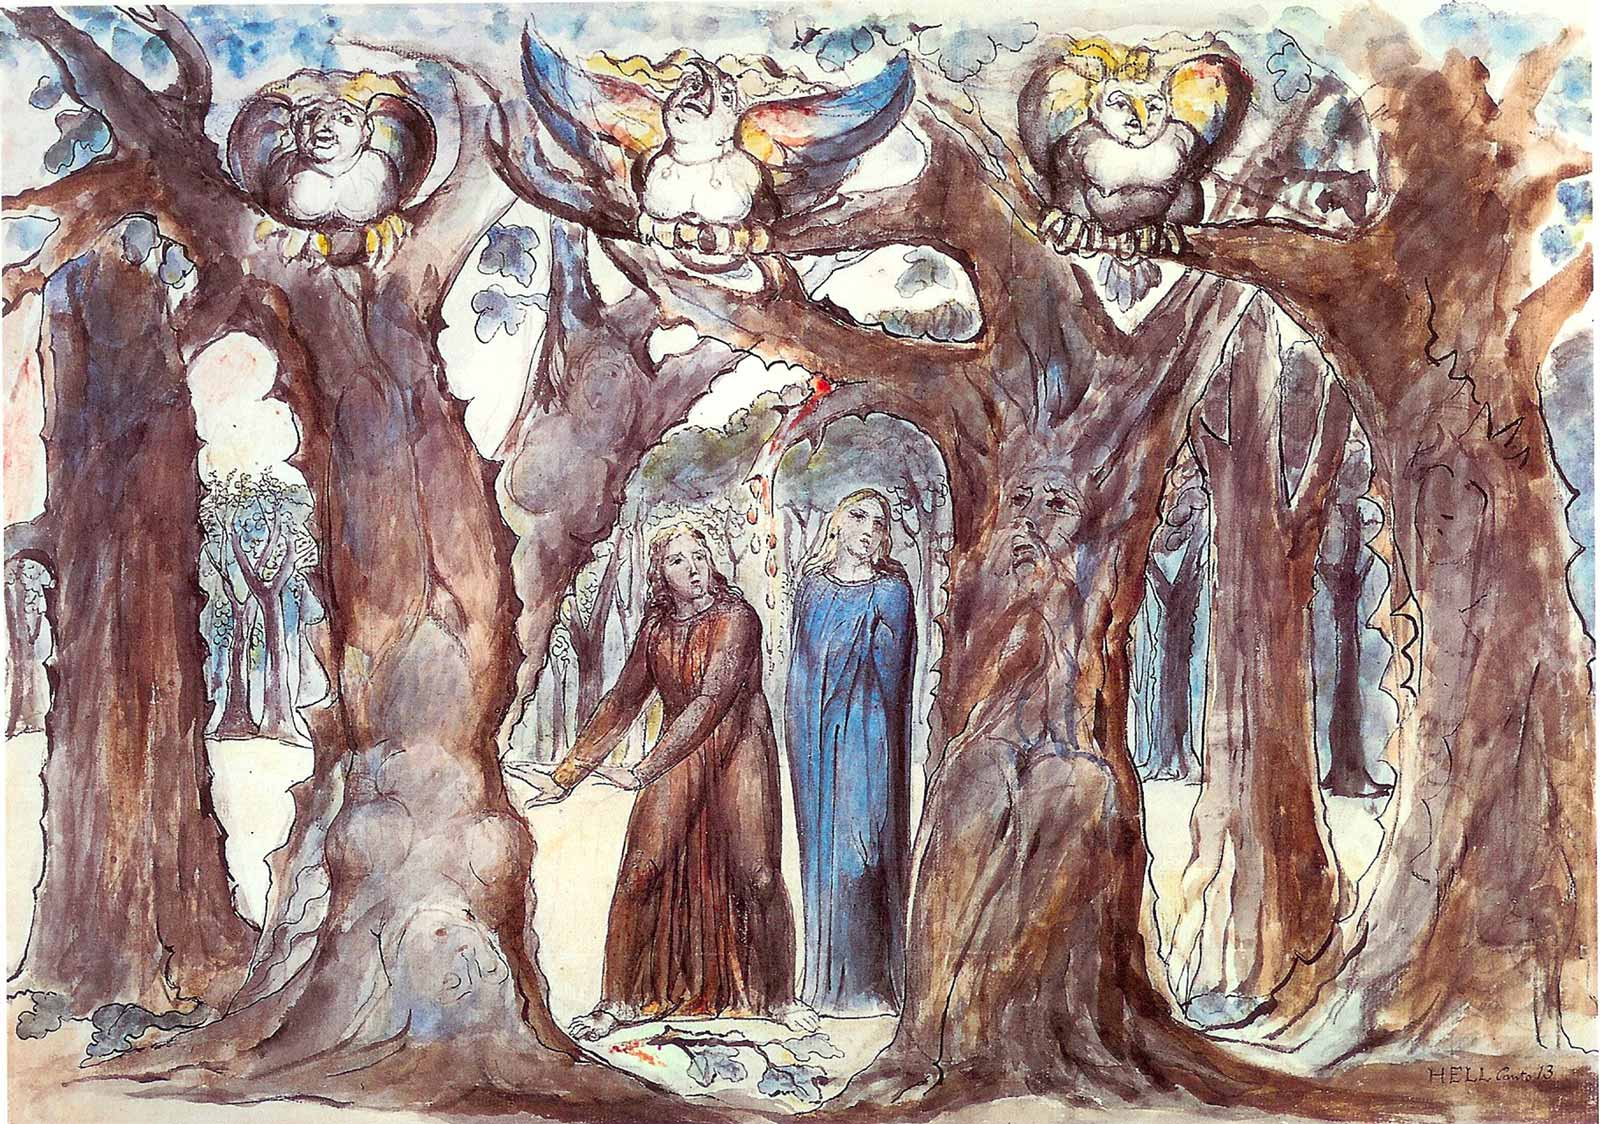 La selva dei suicidi secondo William Blake